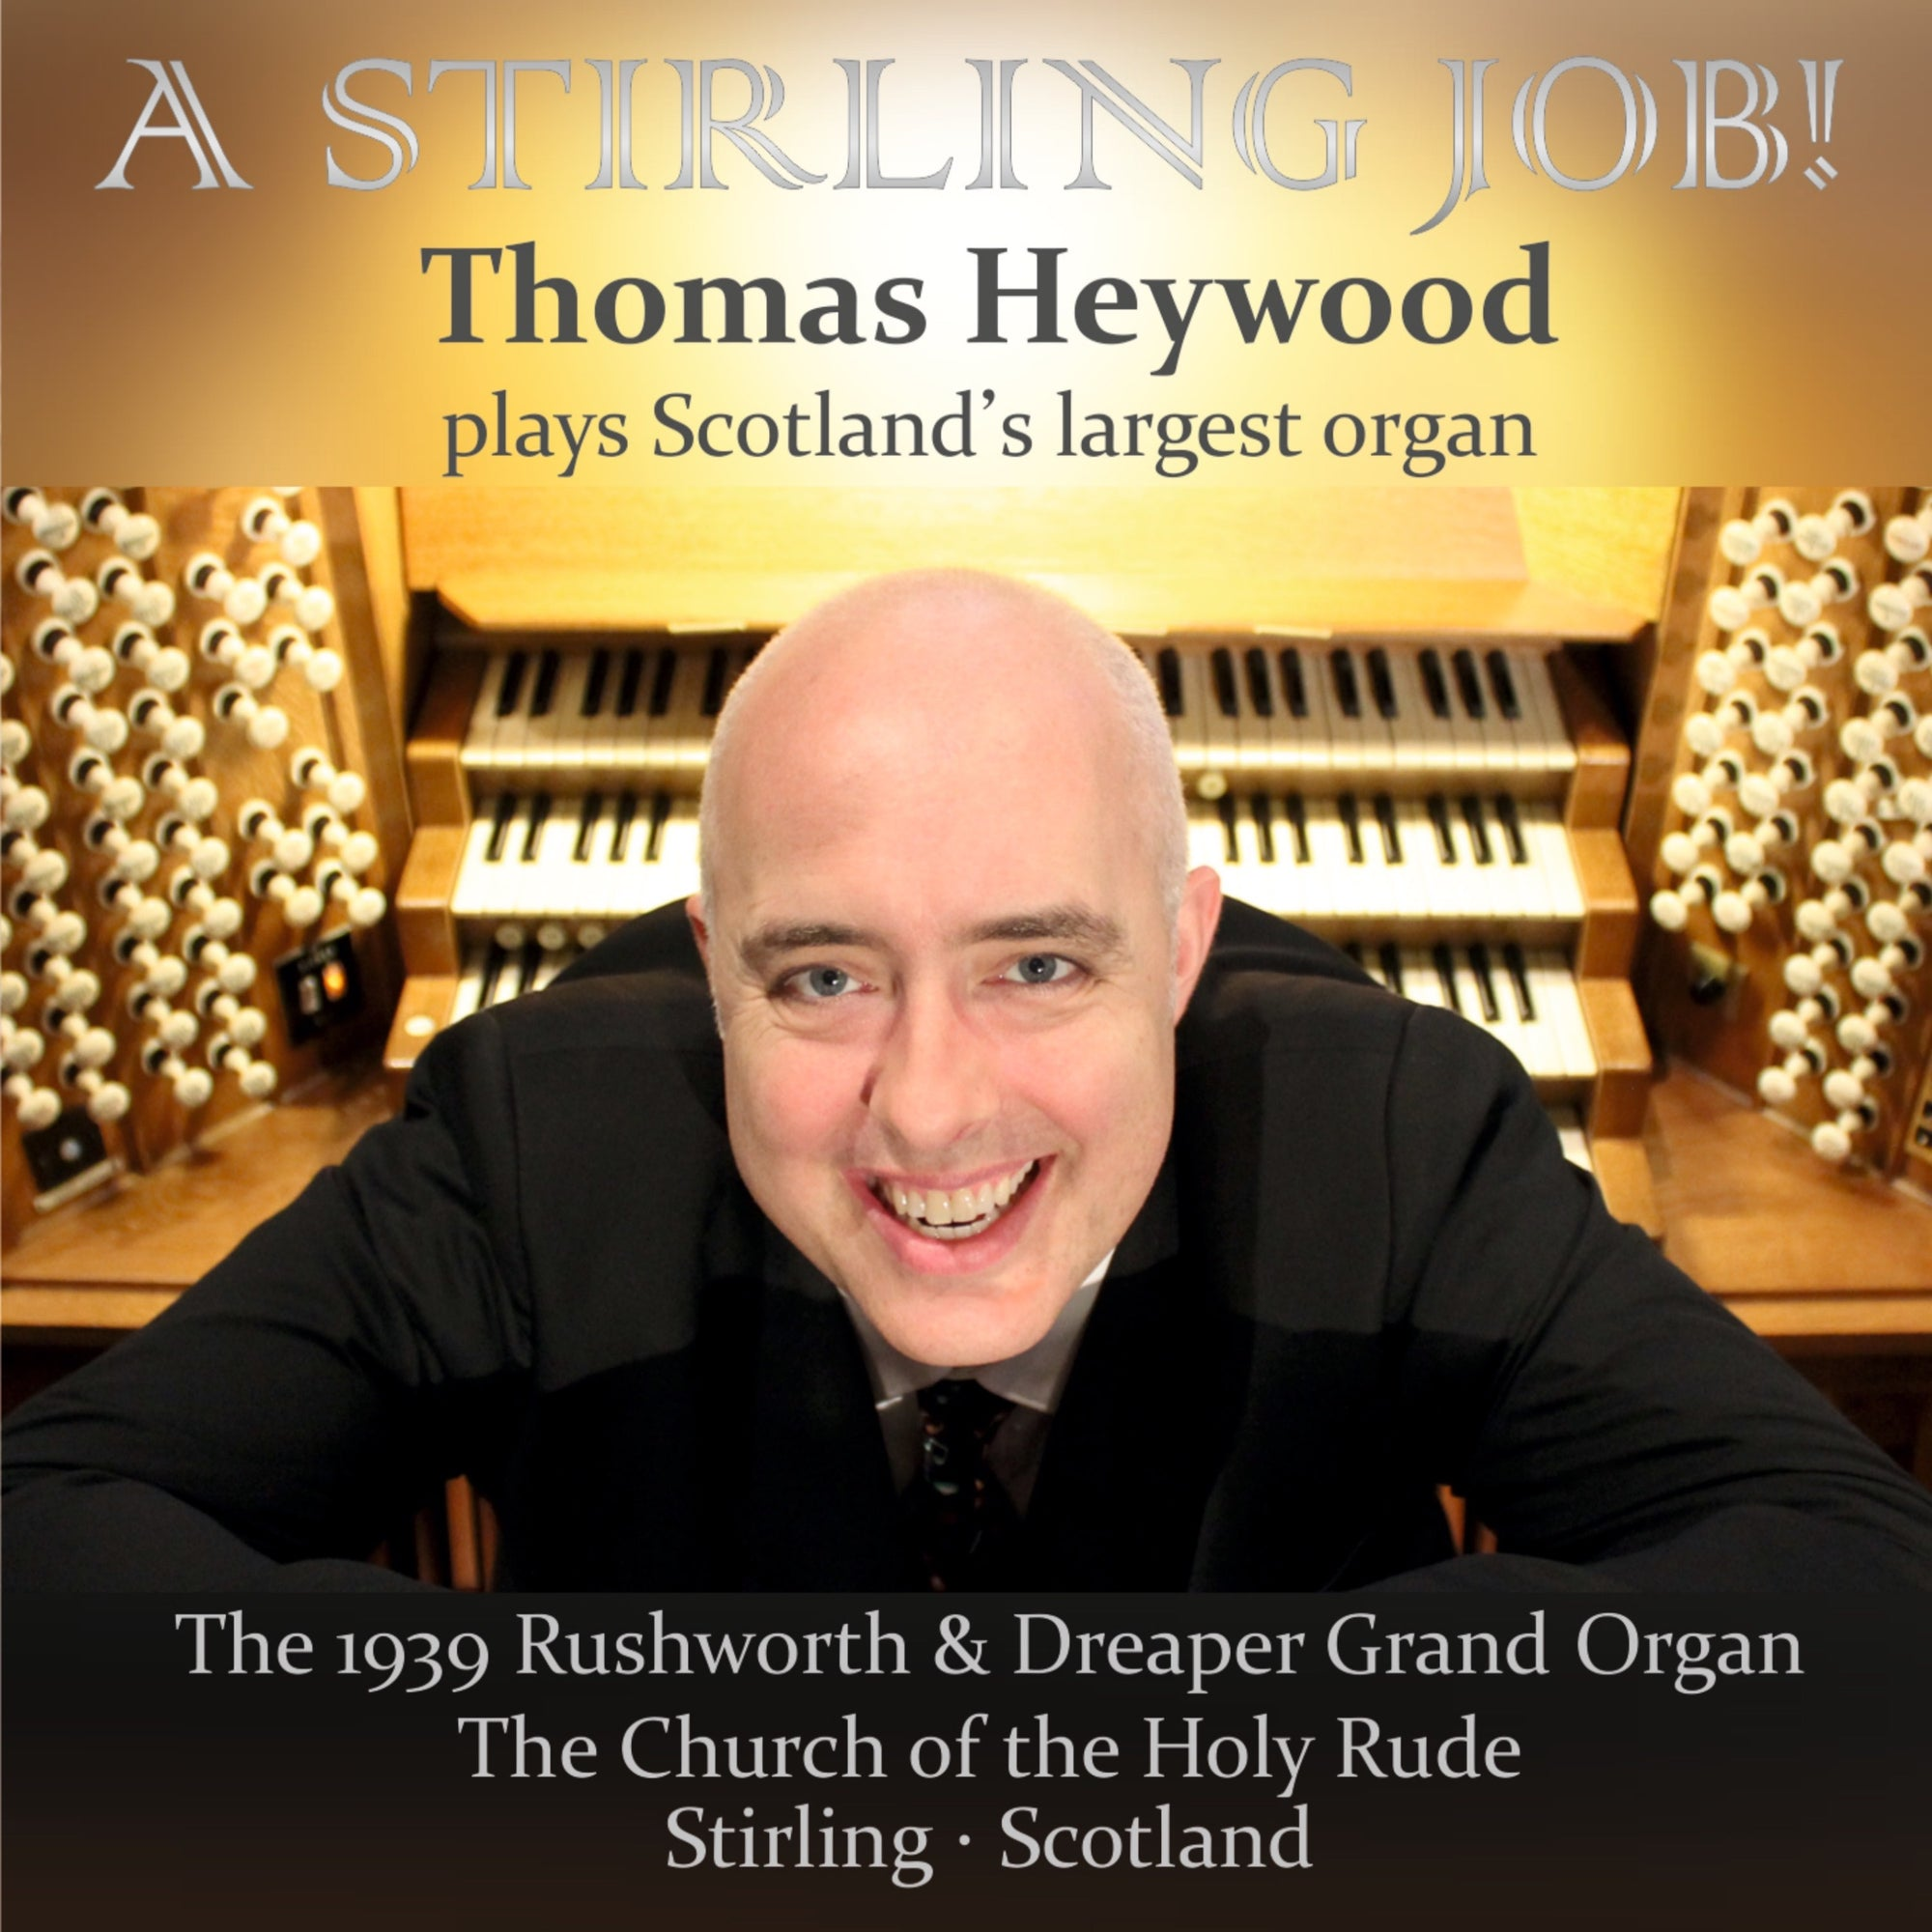 A Stirling Job! (MP3 Album) | Thomas Heywood | Concert Organ International